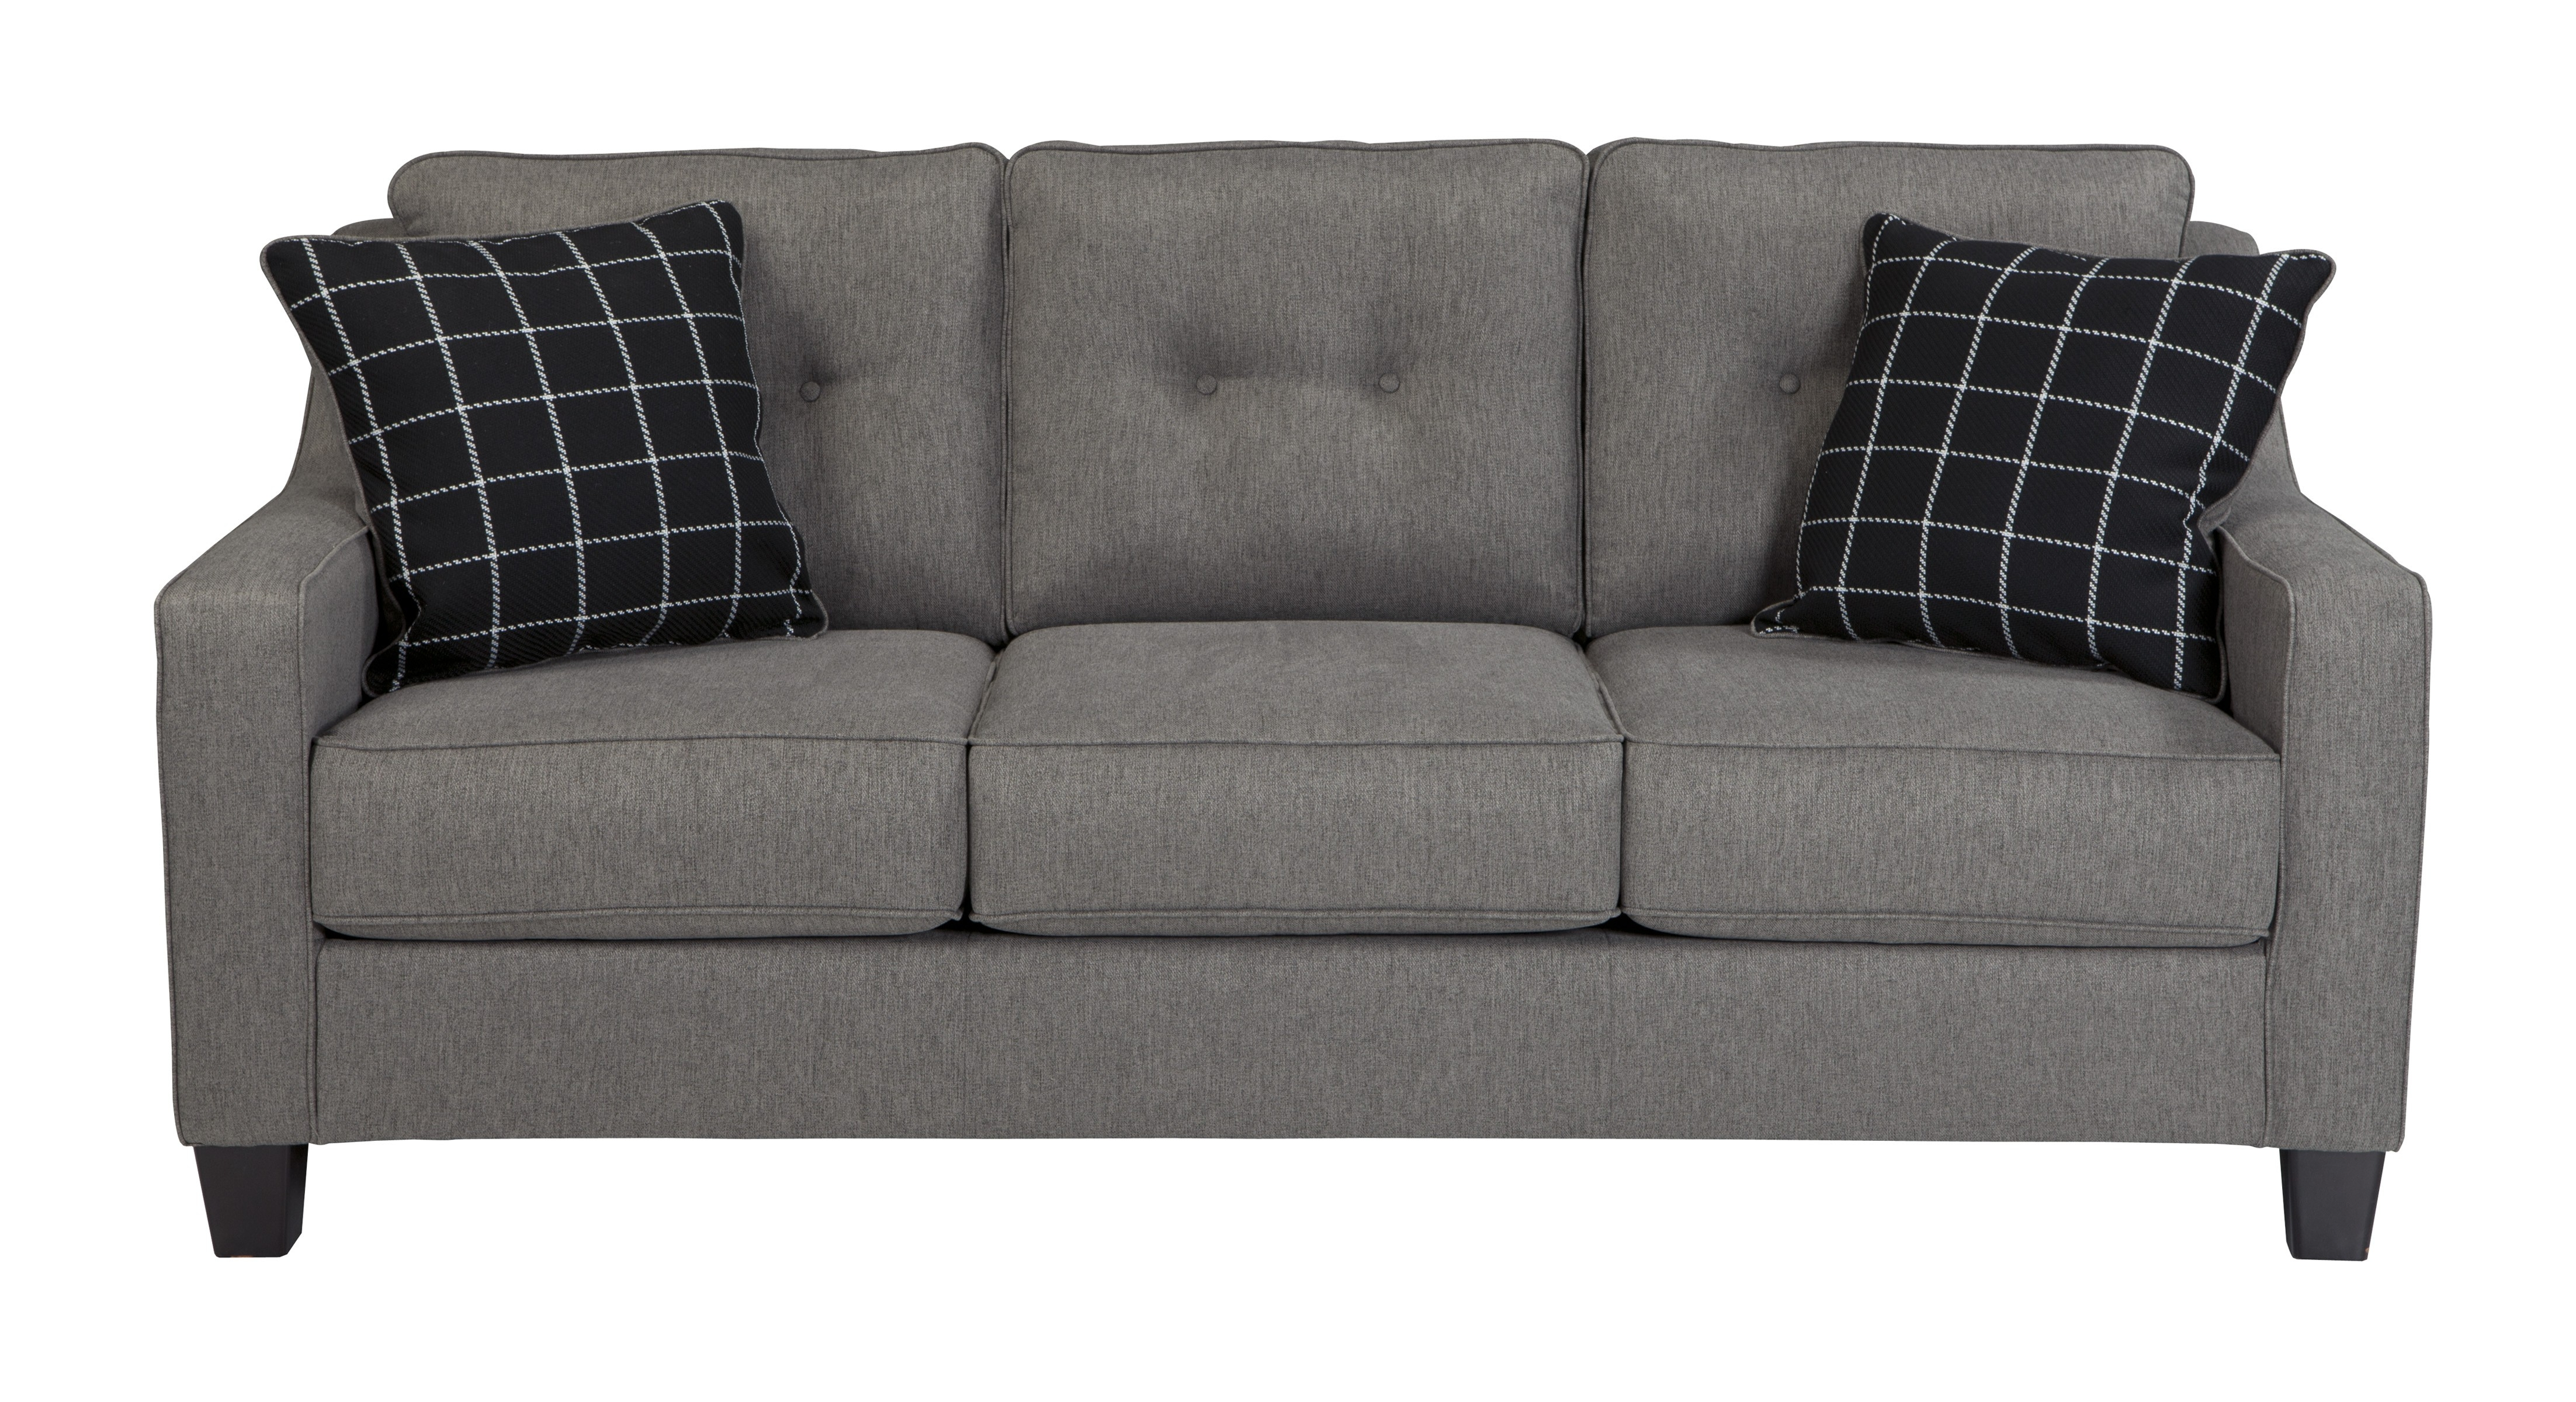 Ashley 5390138 Brindon Contemporary Sofa In Charcoal Fabric Upholstery Throughout Ashley Tufted Sofa (Image 2 of 15)